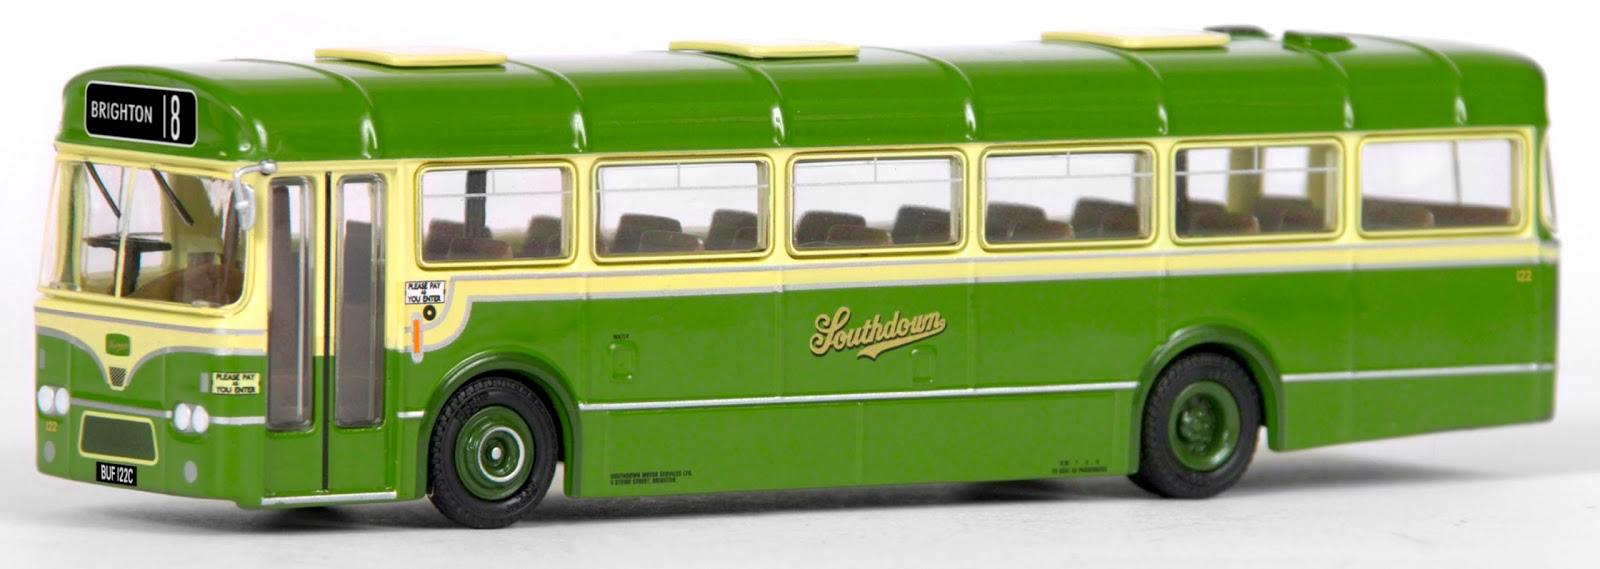 EFE 35308 - 36' BET 6 Bay Leyland Leopard - Southdown Our model depicts the preserved 36' Marshal bodied Leyland Leopard BUF 122C, which first entered service with Southdown in 1965. Decorated in the classic livery, numbered 122 and shown working on route 18 to Brighton. Each model will be issued a numbered certificate in a unique Southdown Ticket design.